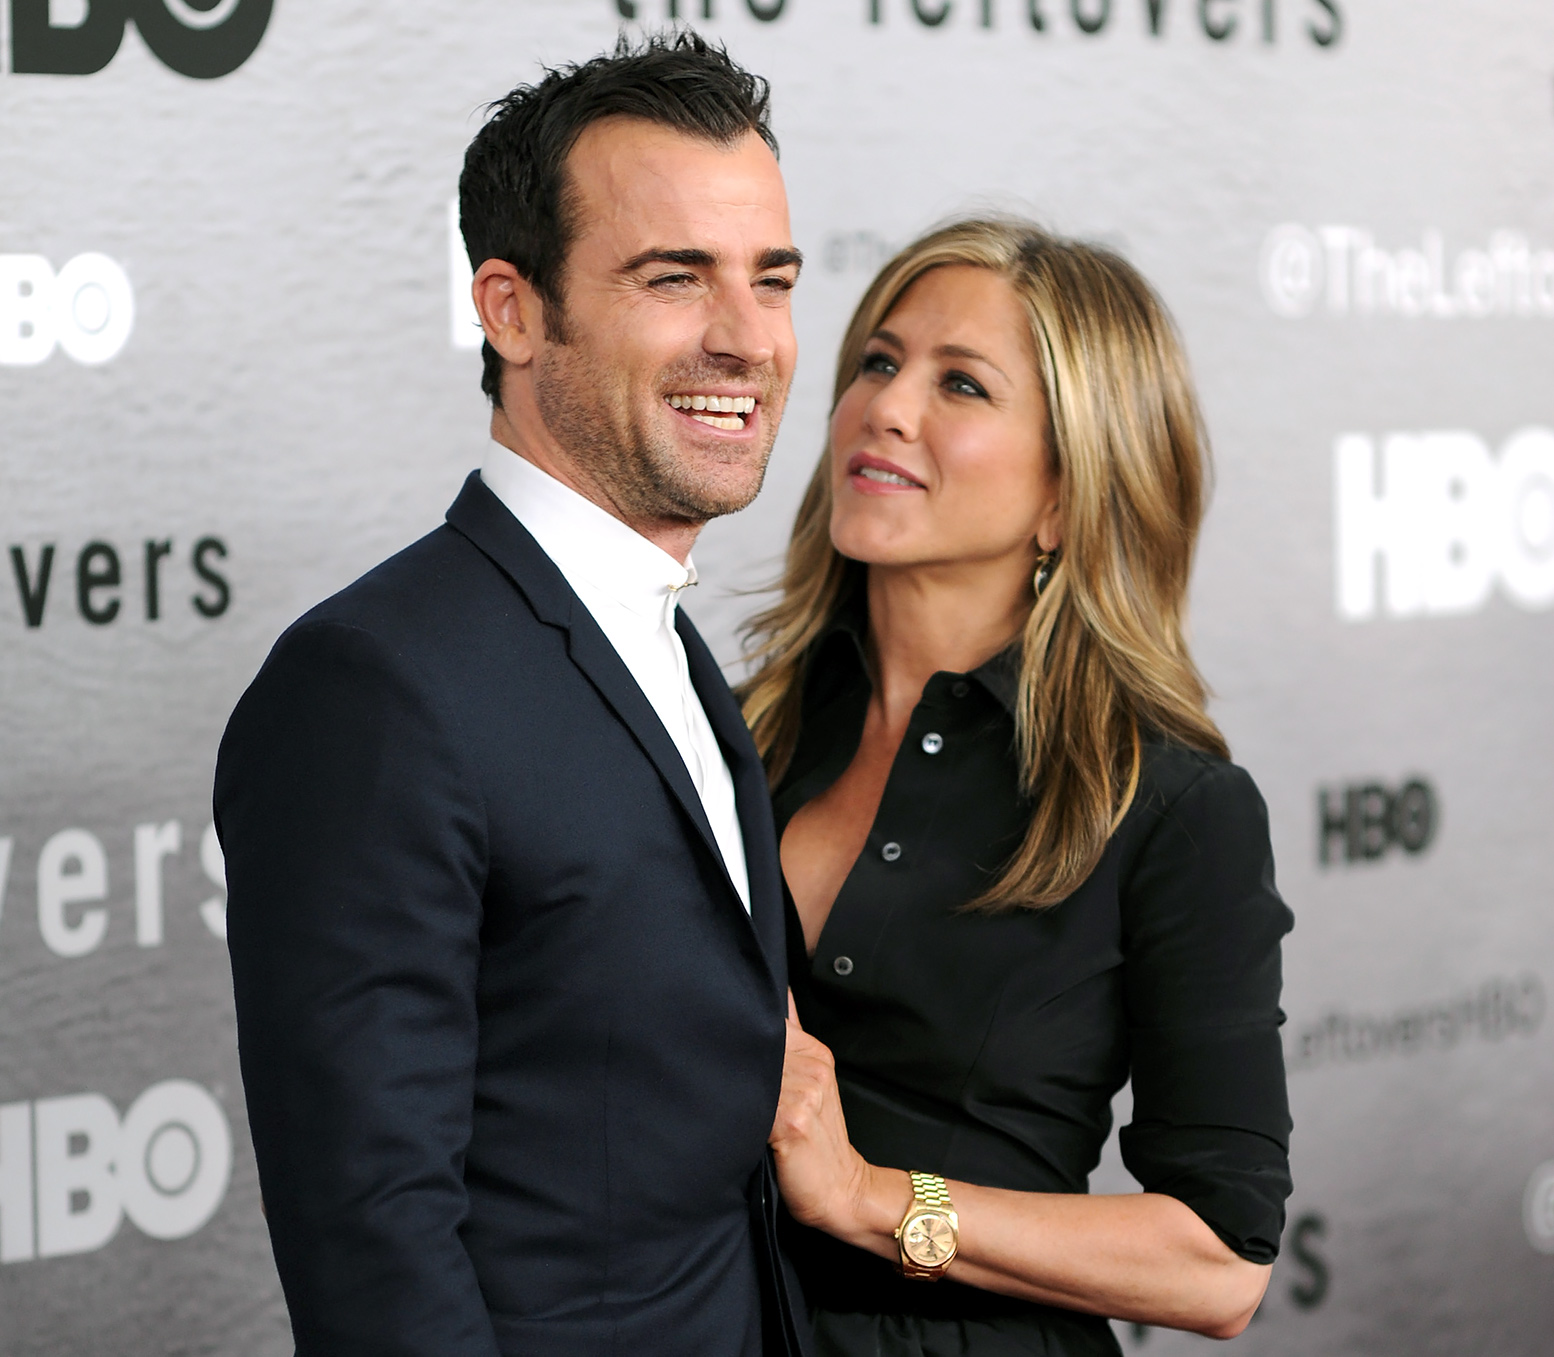 Justin Theroux and Jennifer Aniston married